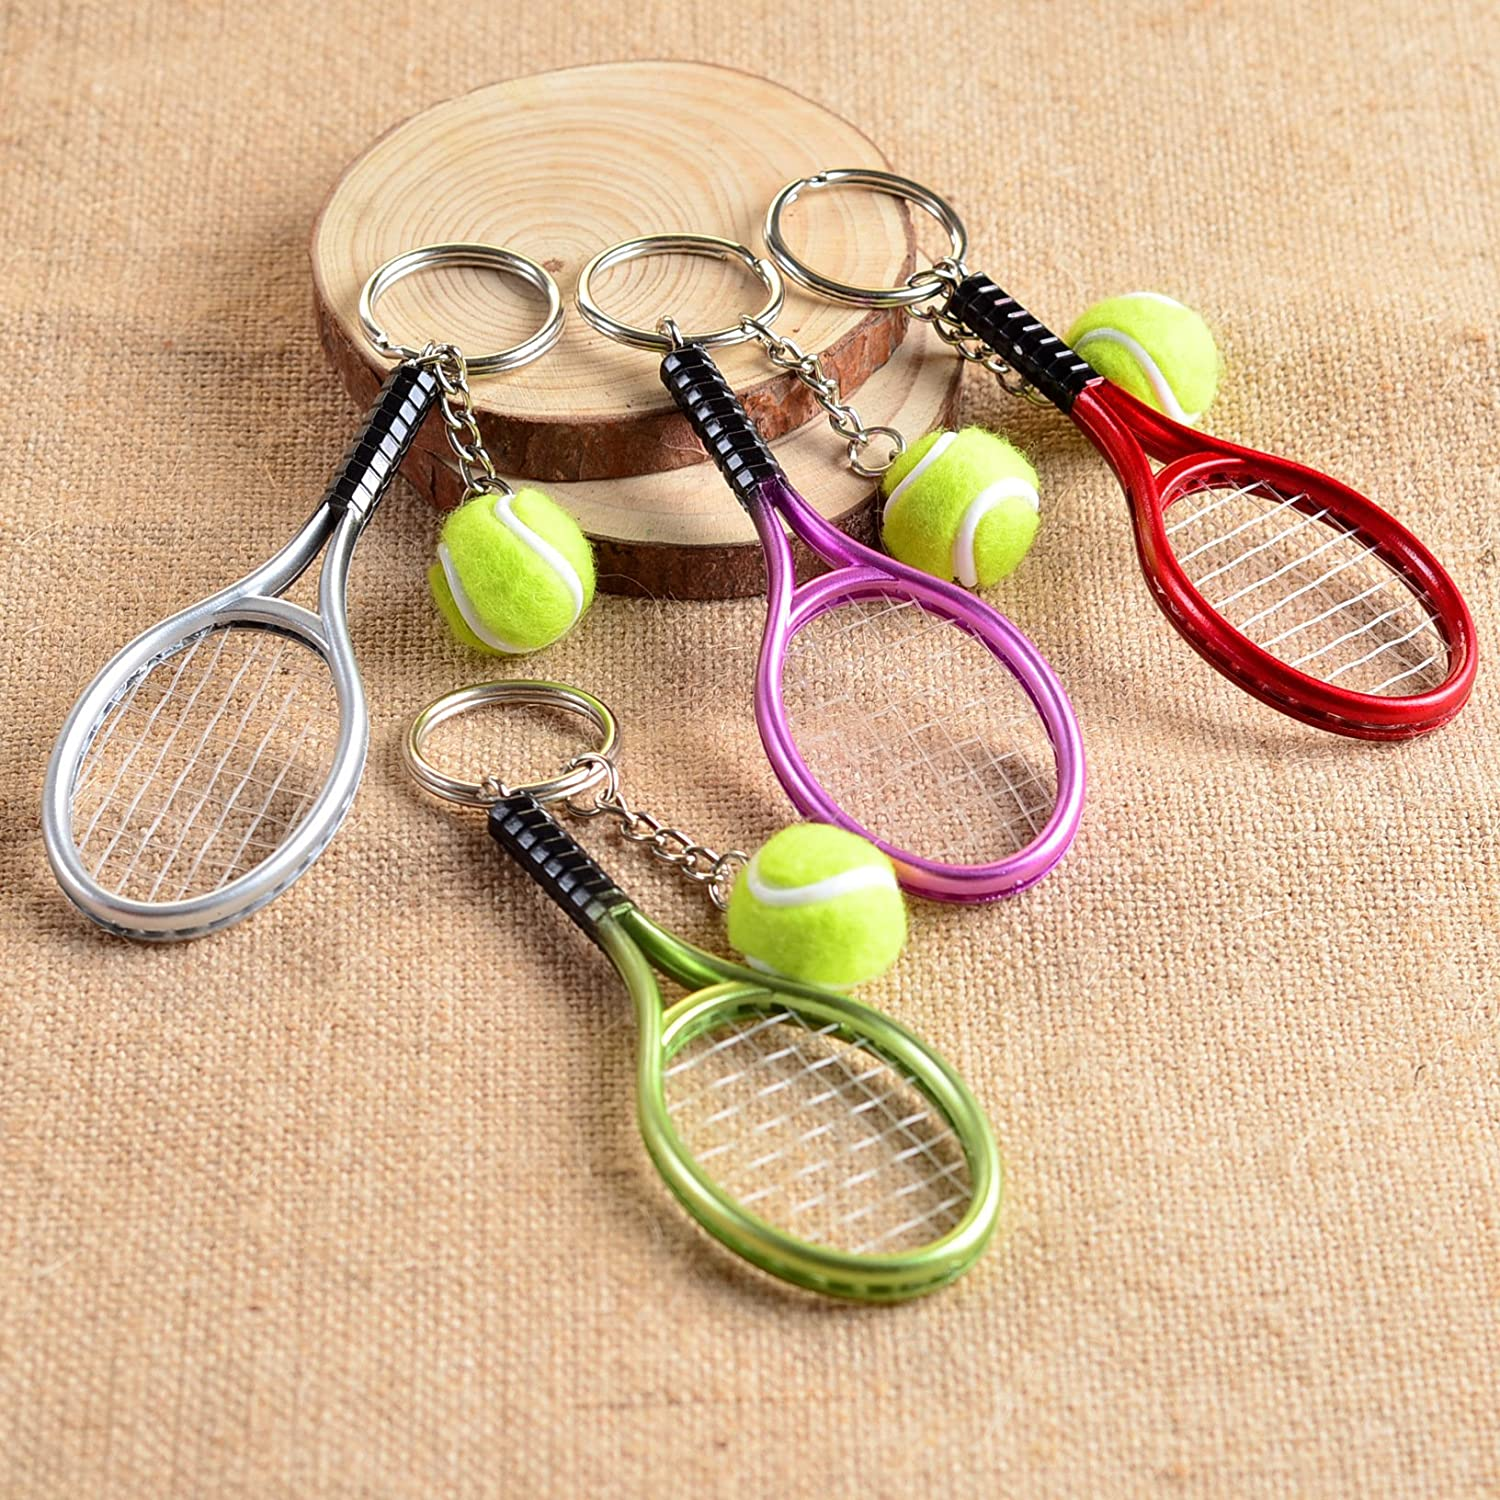 Amazon.com: Llavero de mini raqueta de tenis, anillo ...